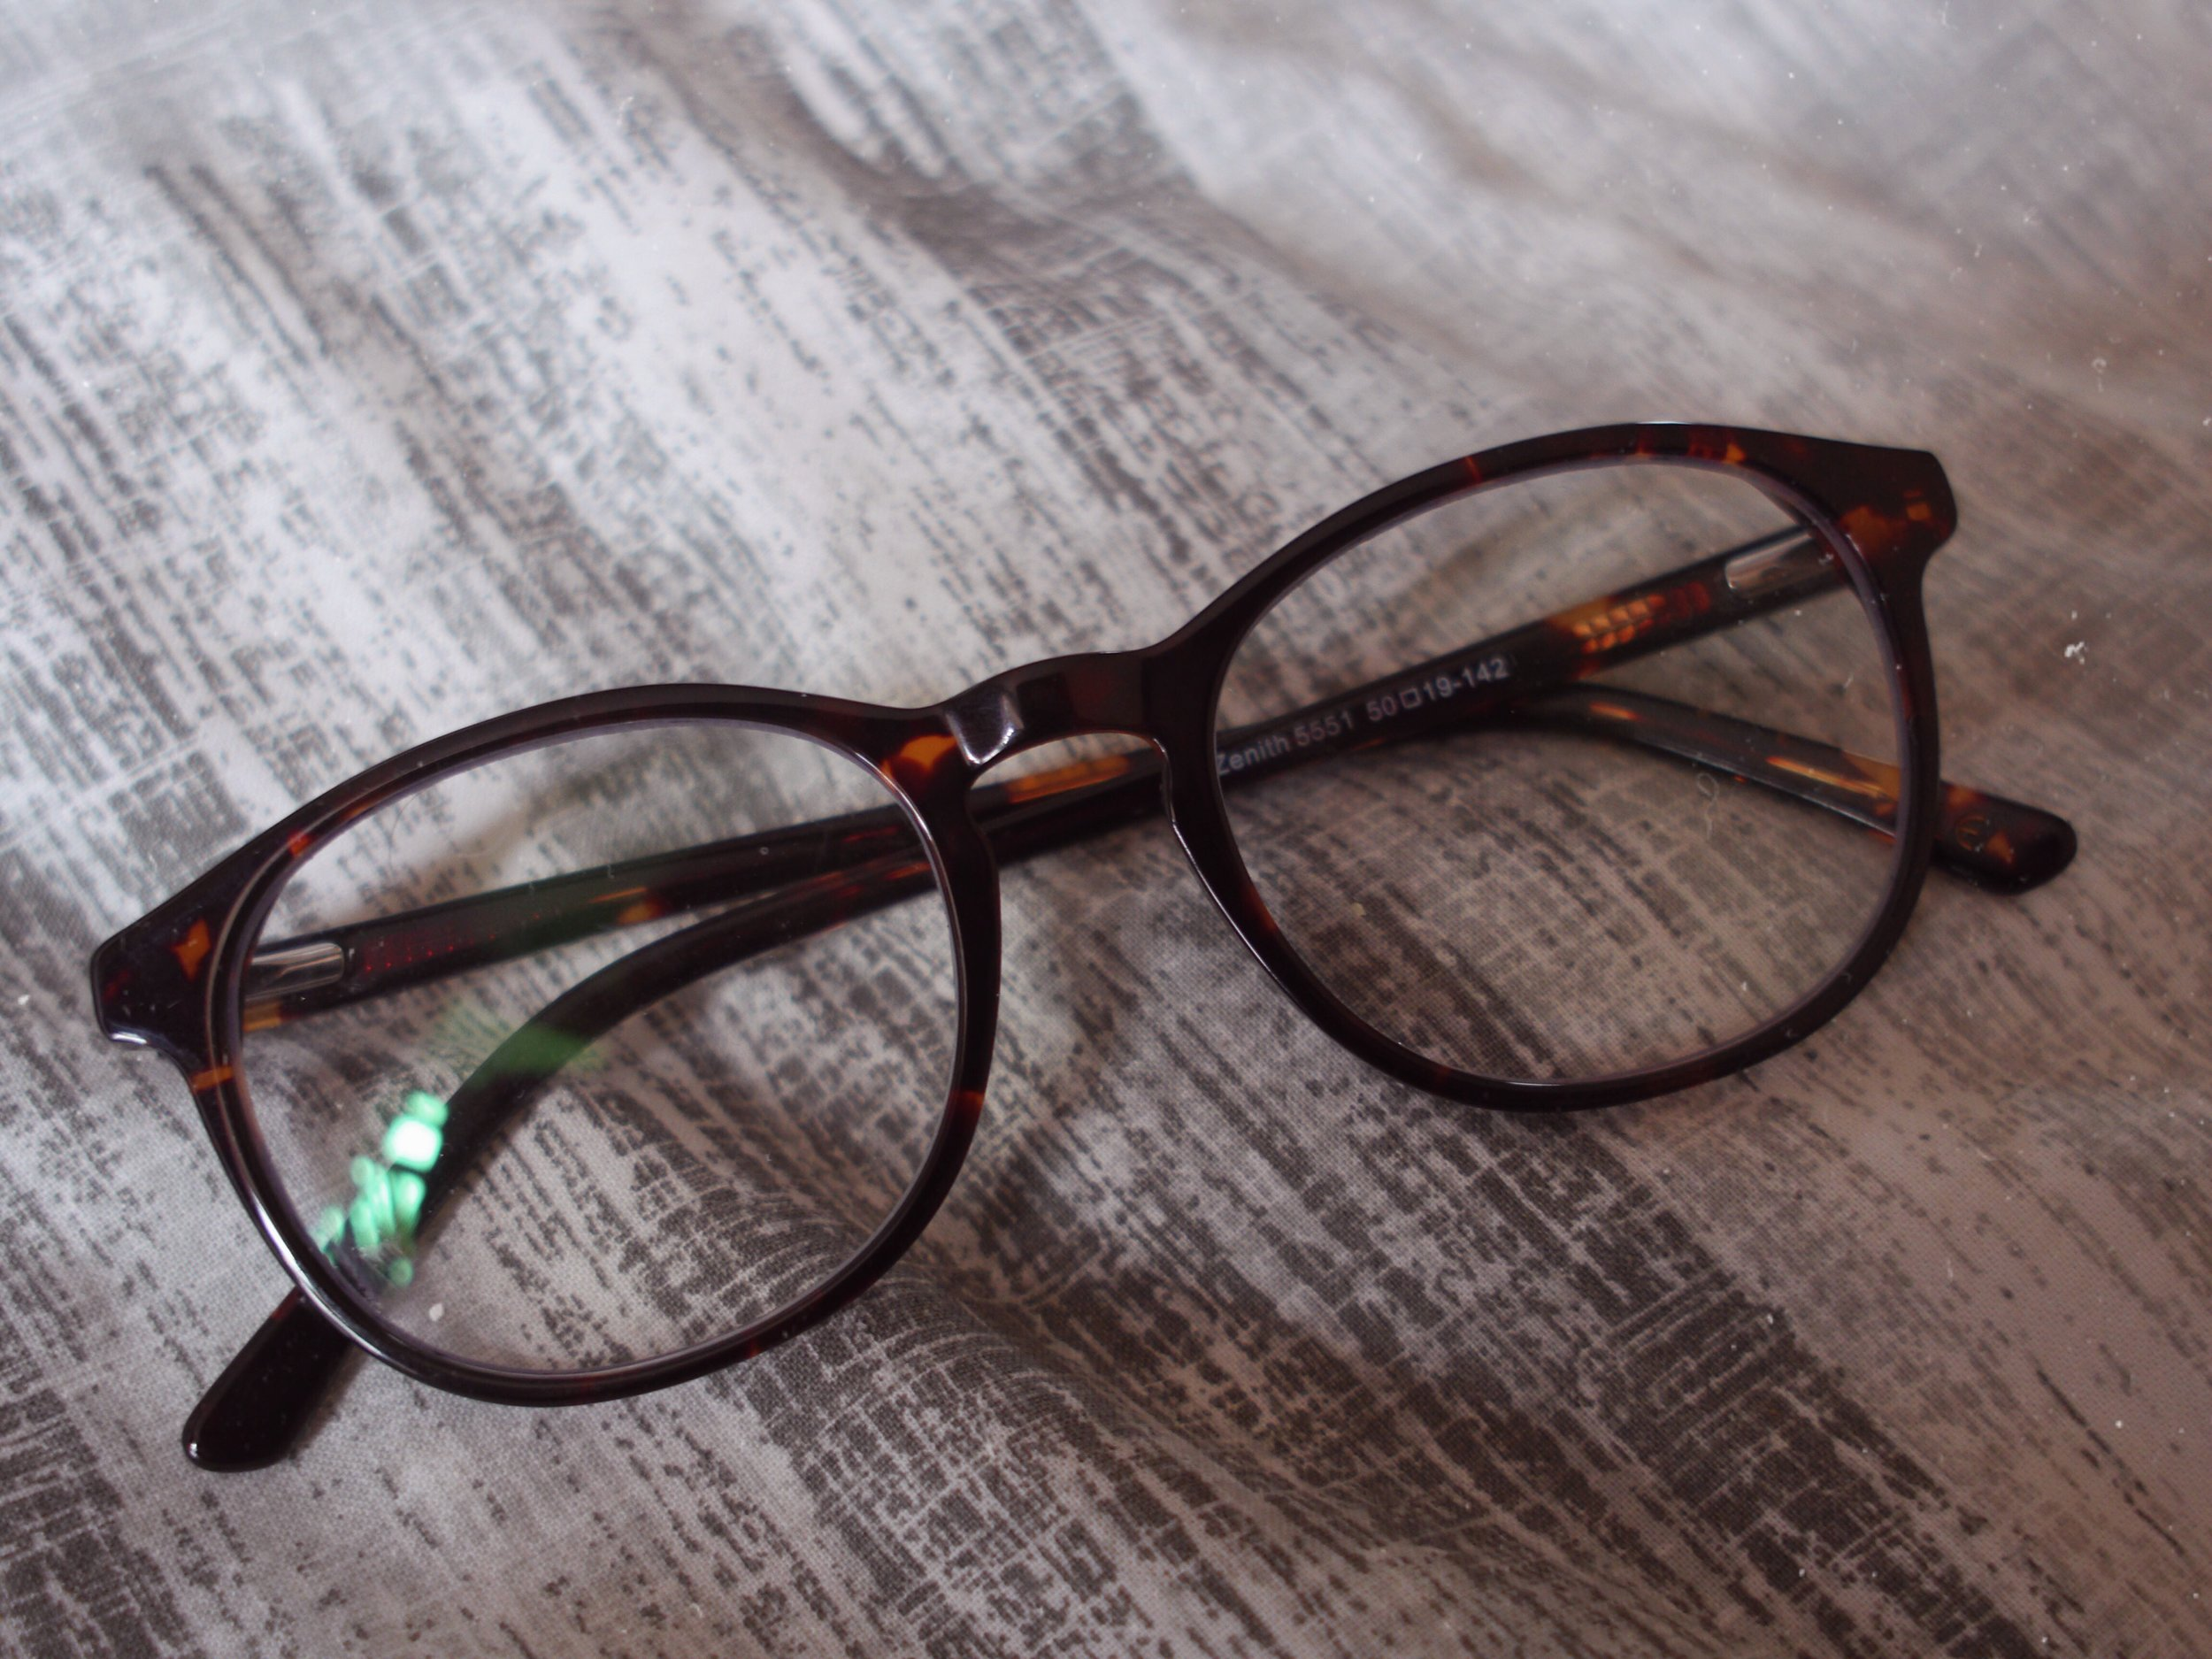 Zenith glasses in tortoise from AMBR Eyewear